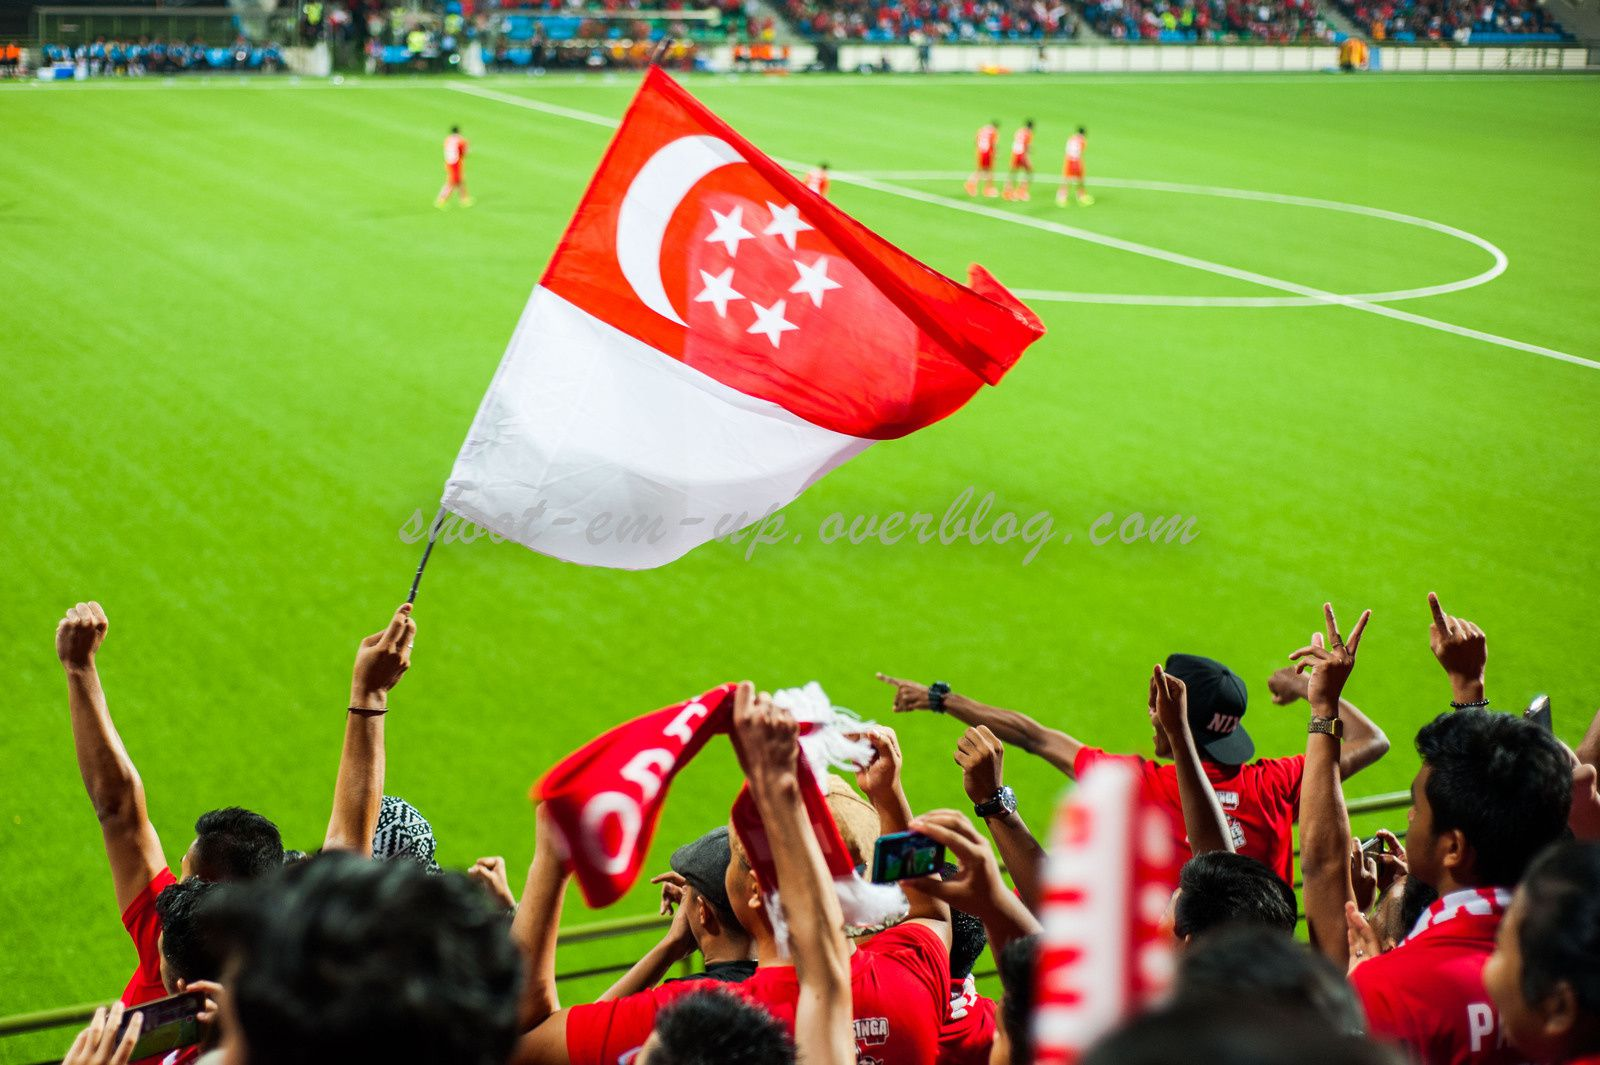 Singapore Lions fans during a match of championship